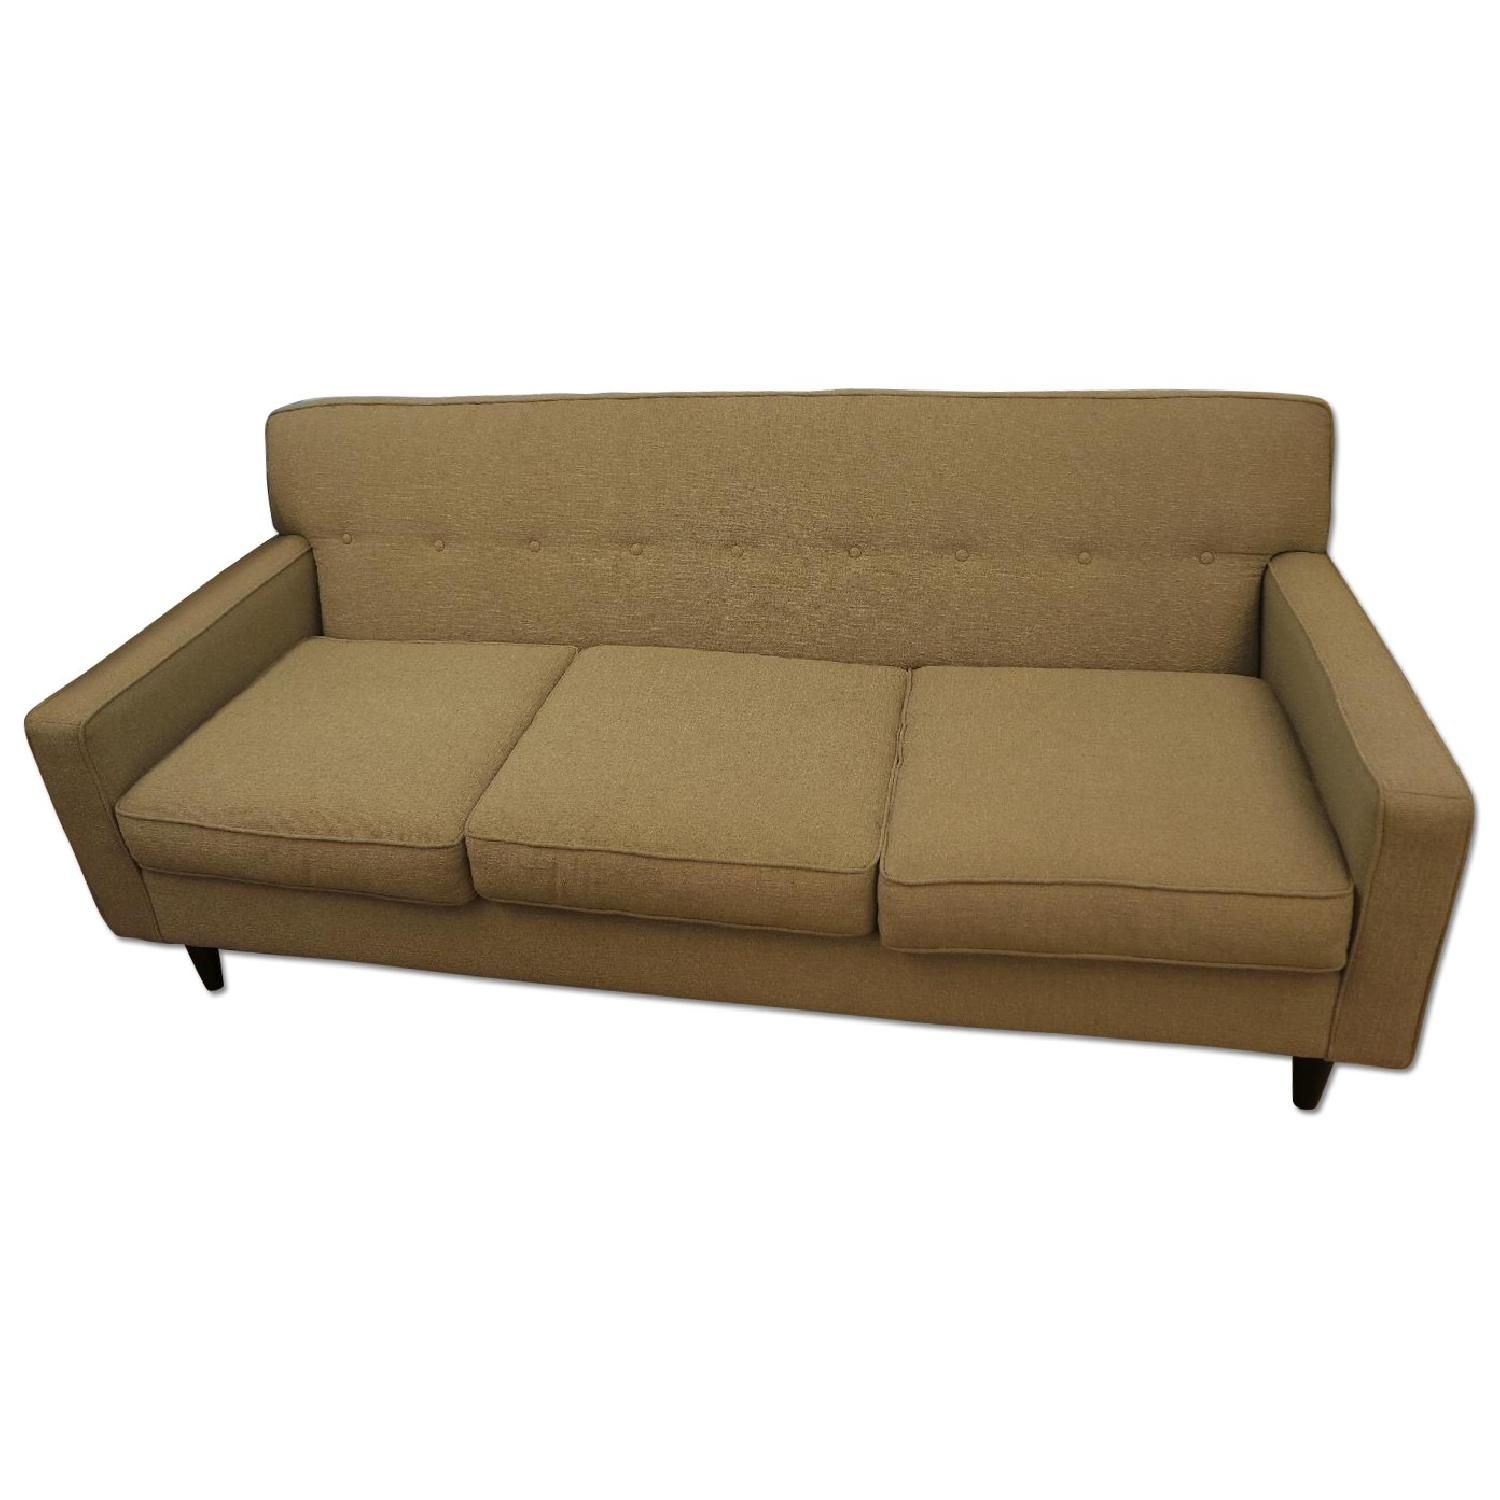 mid century modern sofa designs leather clearance toronto better by design sofas